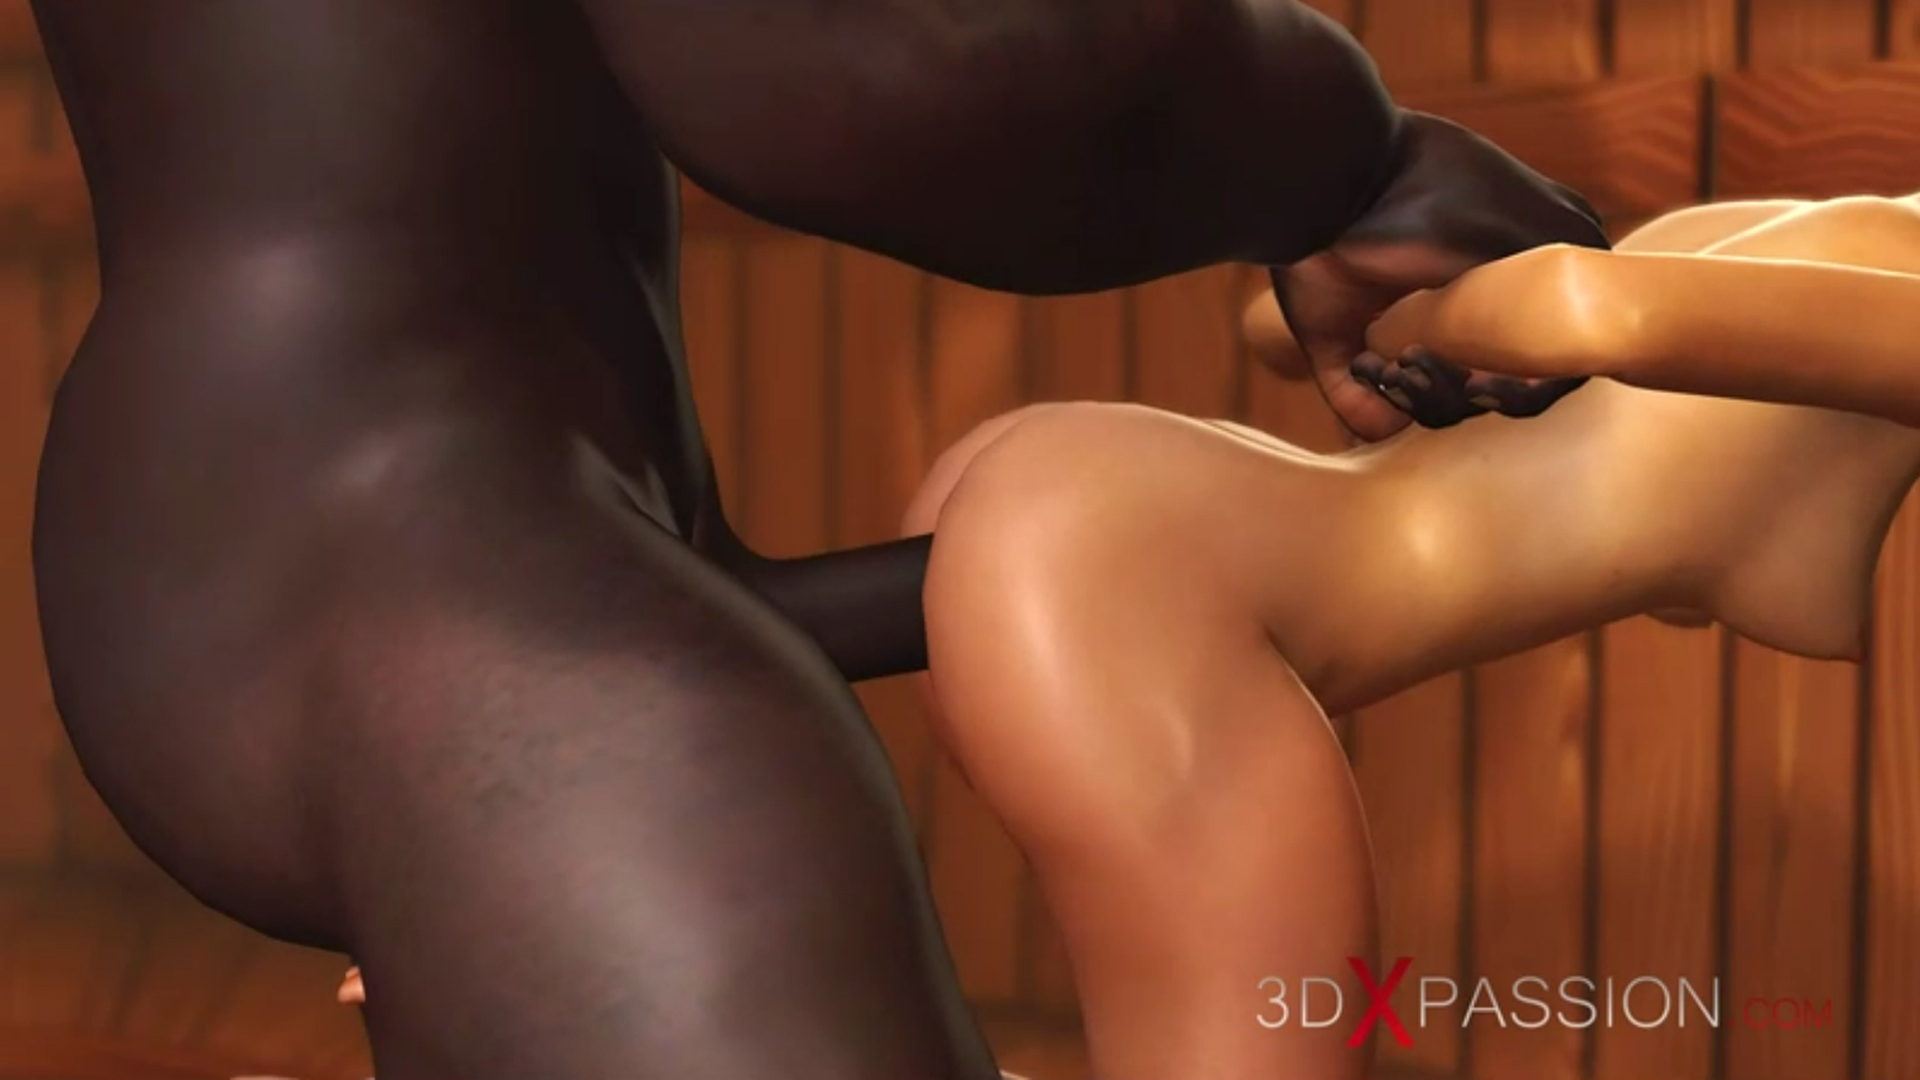 Nerdy girl in glasses doggystyle fuck black basketball player in sauna